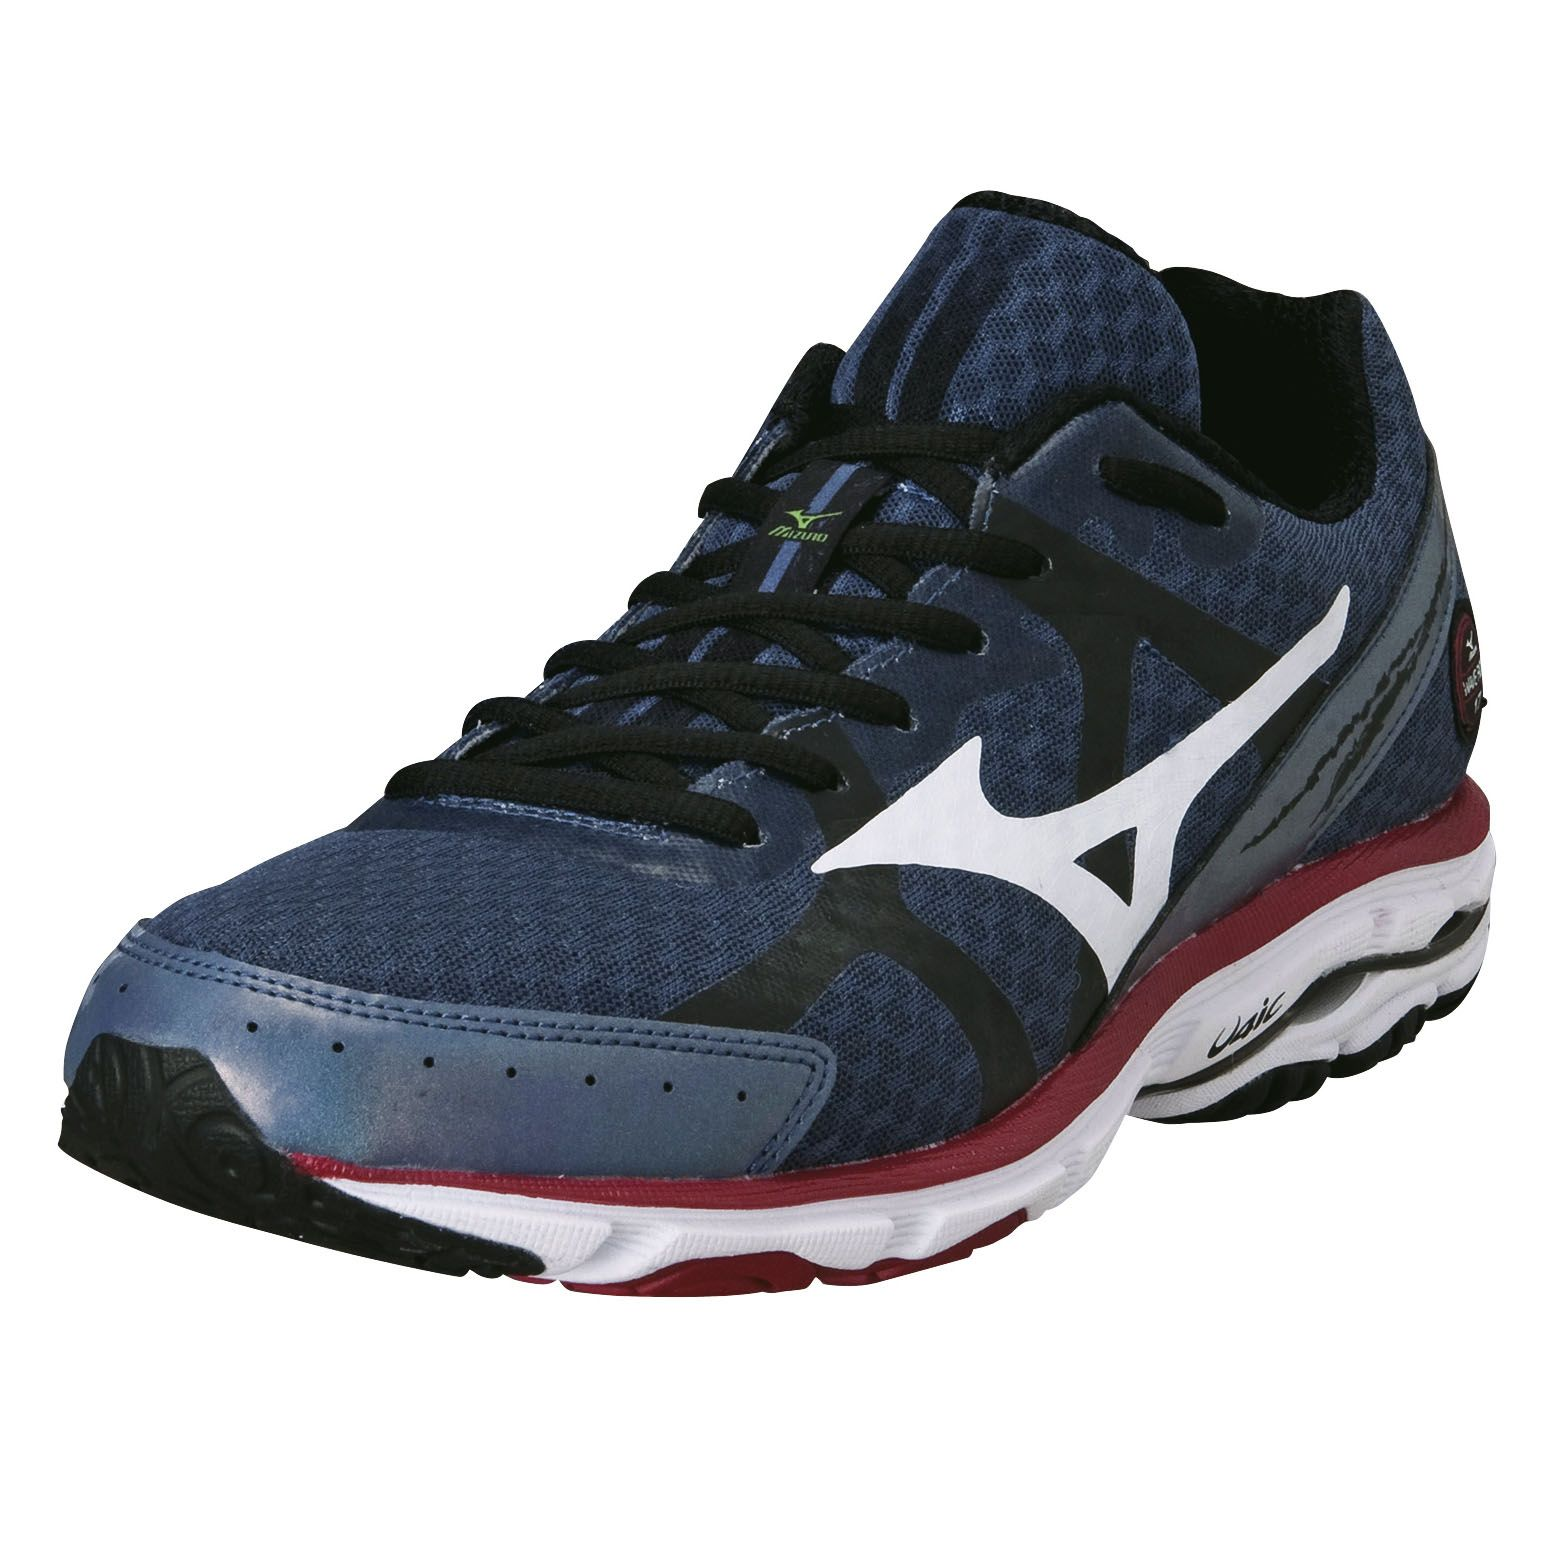 Mizuno Running Shoes Midsole